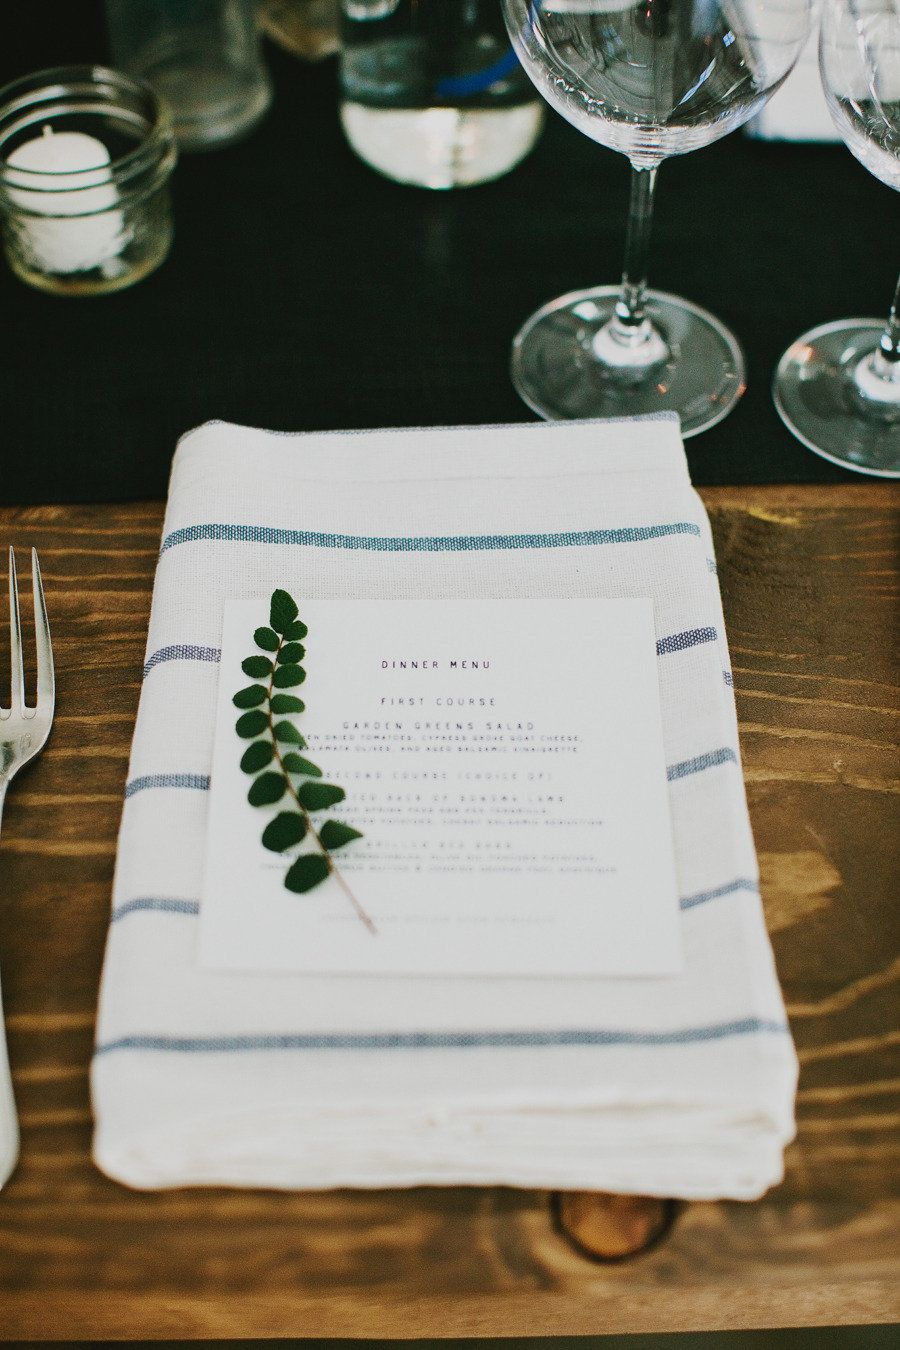 ELLY dish towels, $3.99/4 pack These look a heck of a lot more chic than plasticky rented napkins for right around the same price (you can get two dinner napkins from each towel), just check out this Style Me Pretty wedding. Photography: Milou + Olin Photography - milouandolin.com Event Planning, Styling + Stationery: Bash, Please - bashplease.com/ Catering: Paula Le Duc Fine Catering - paulaleduc.com/   Read More on SMP: http://stylemepretty.com/vault/gallery/13462